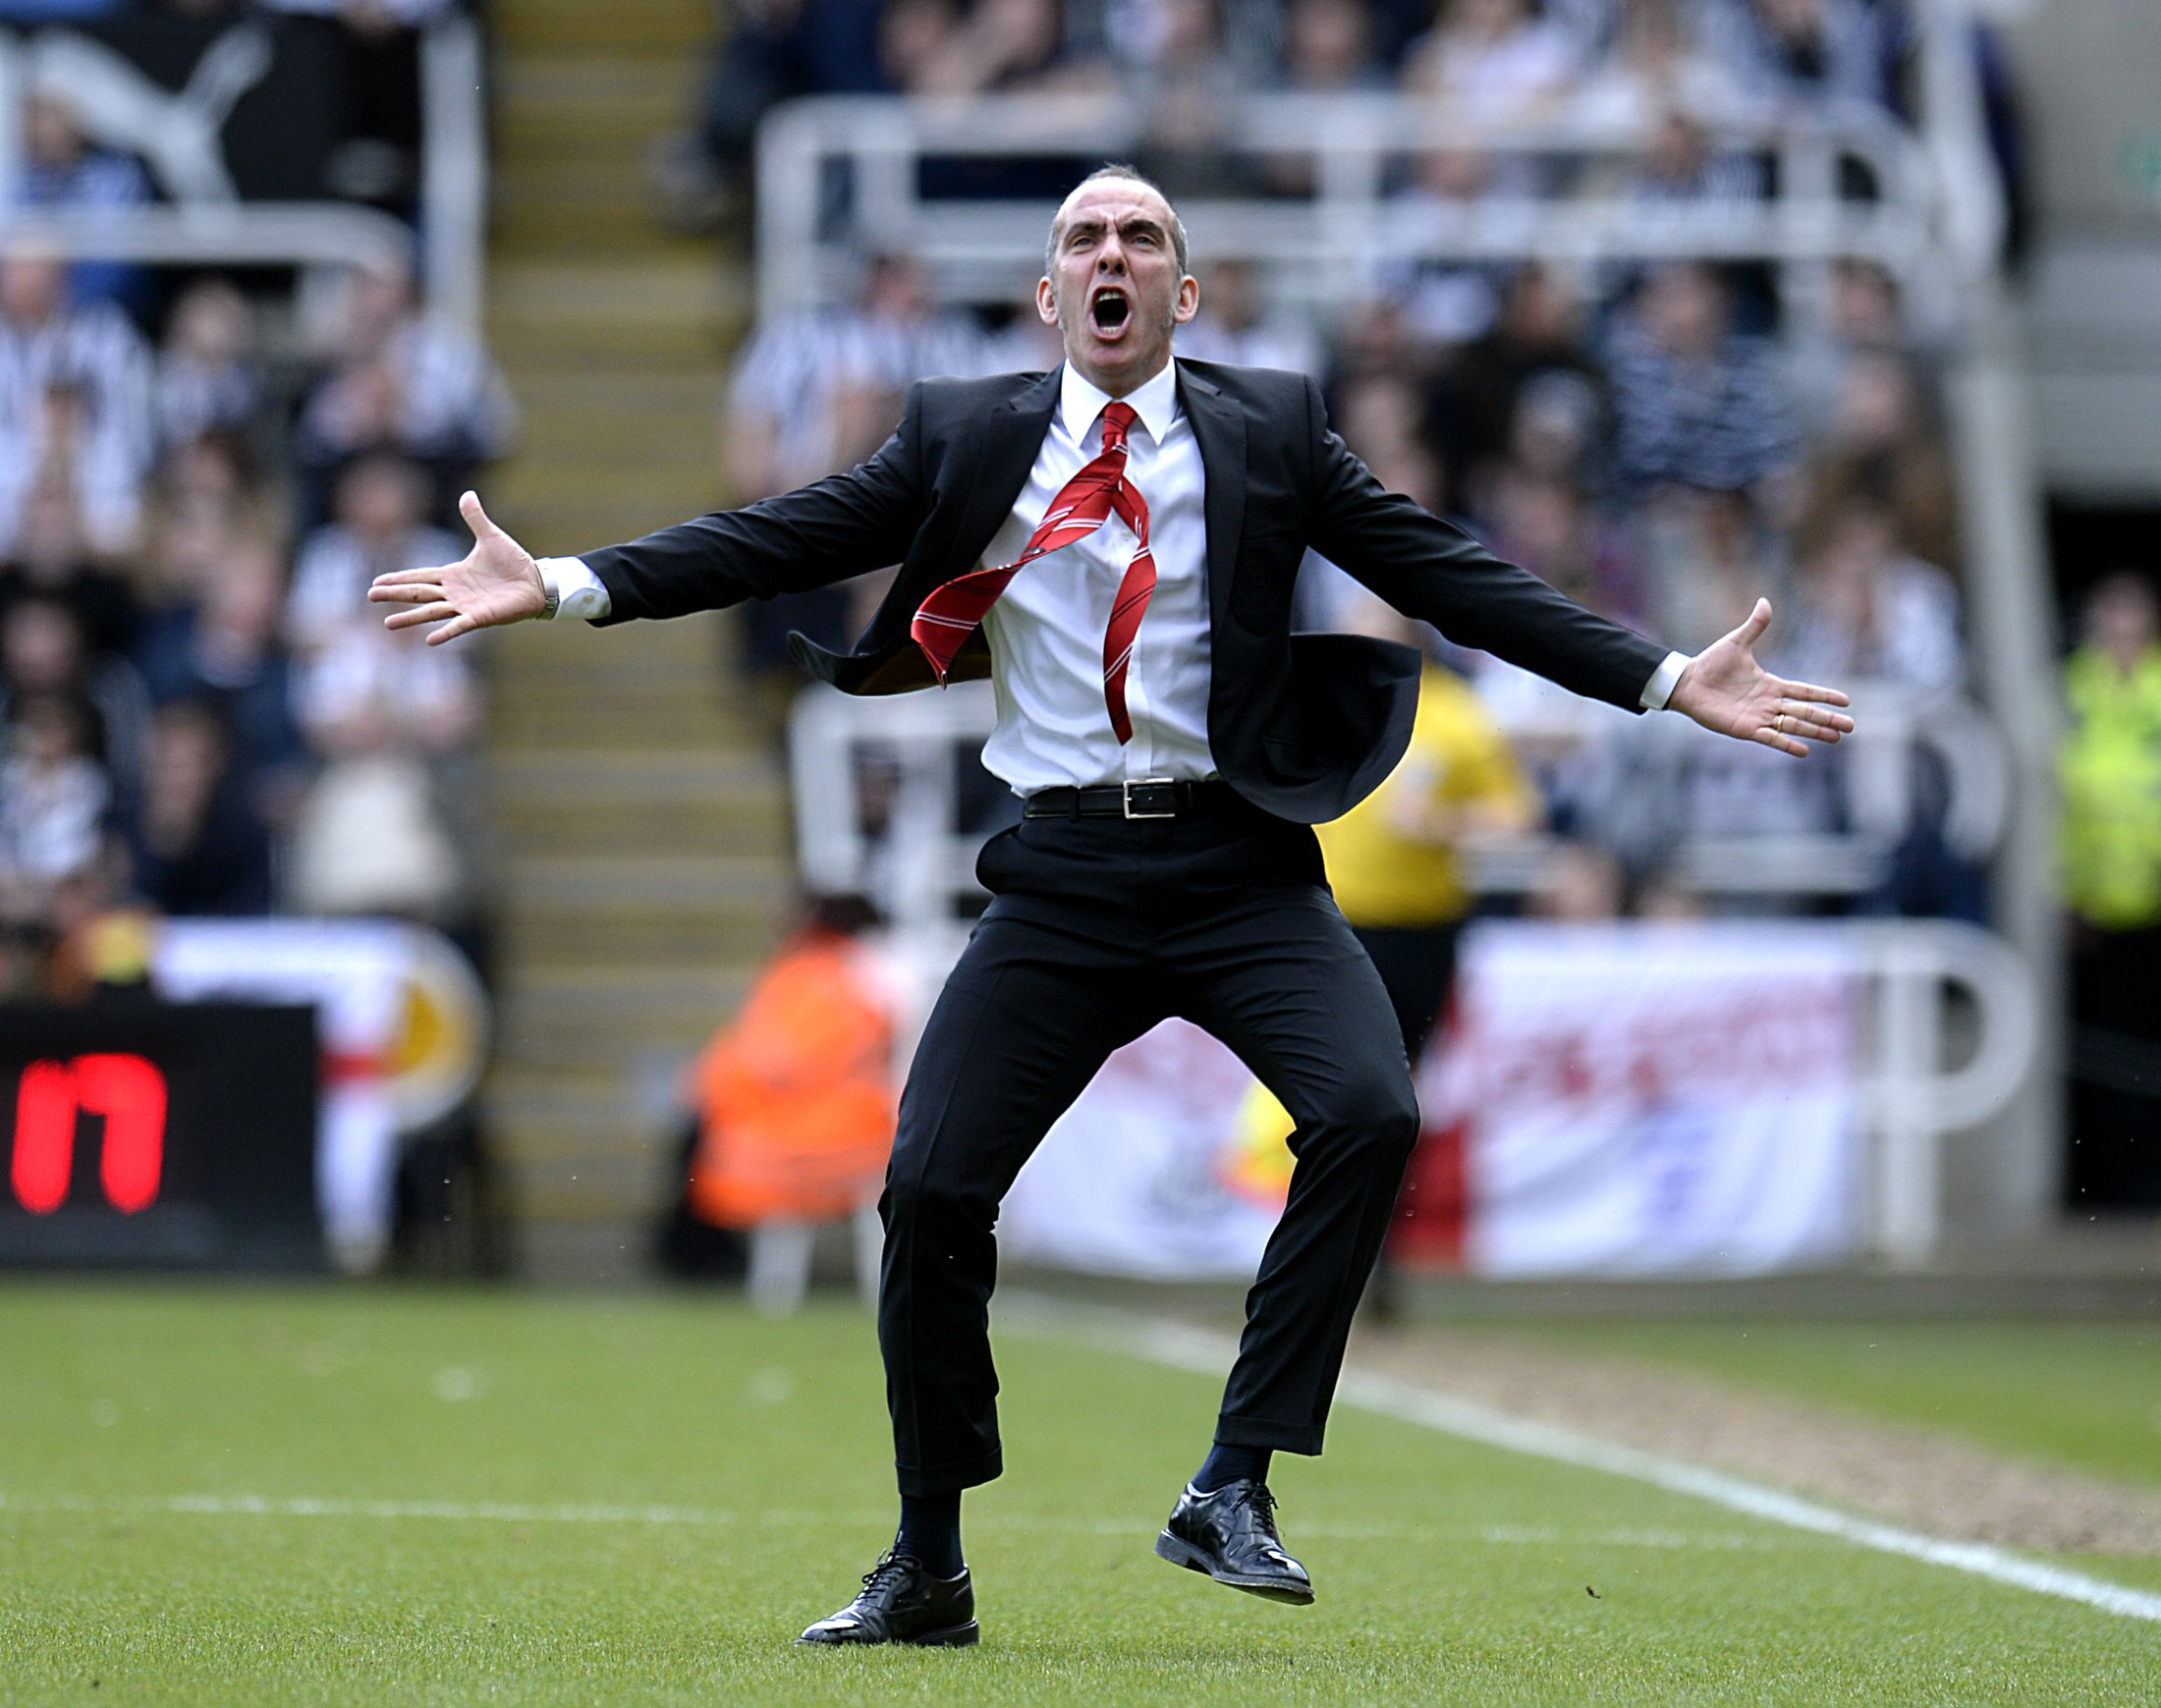 Sunderland manager Paolo Di Canio celebrates after Stephane Sessegnon scores his side's first goal of the game during the Barclays Premier League match at St James' Park, Newcastle. PRESS ASSOCIATION Photo. Picture date: Sunday April 14, 2013. See